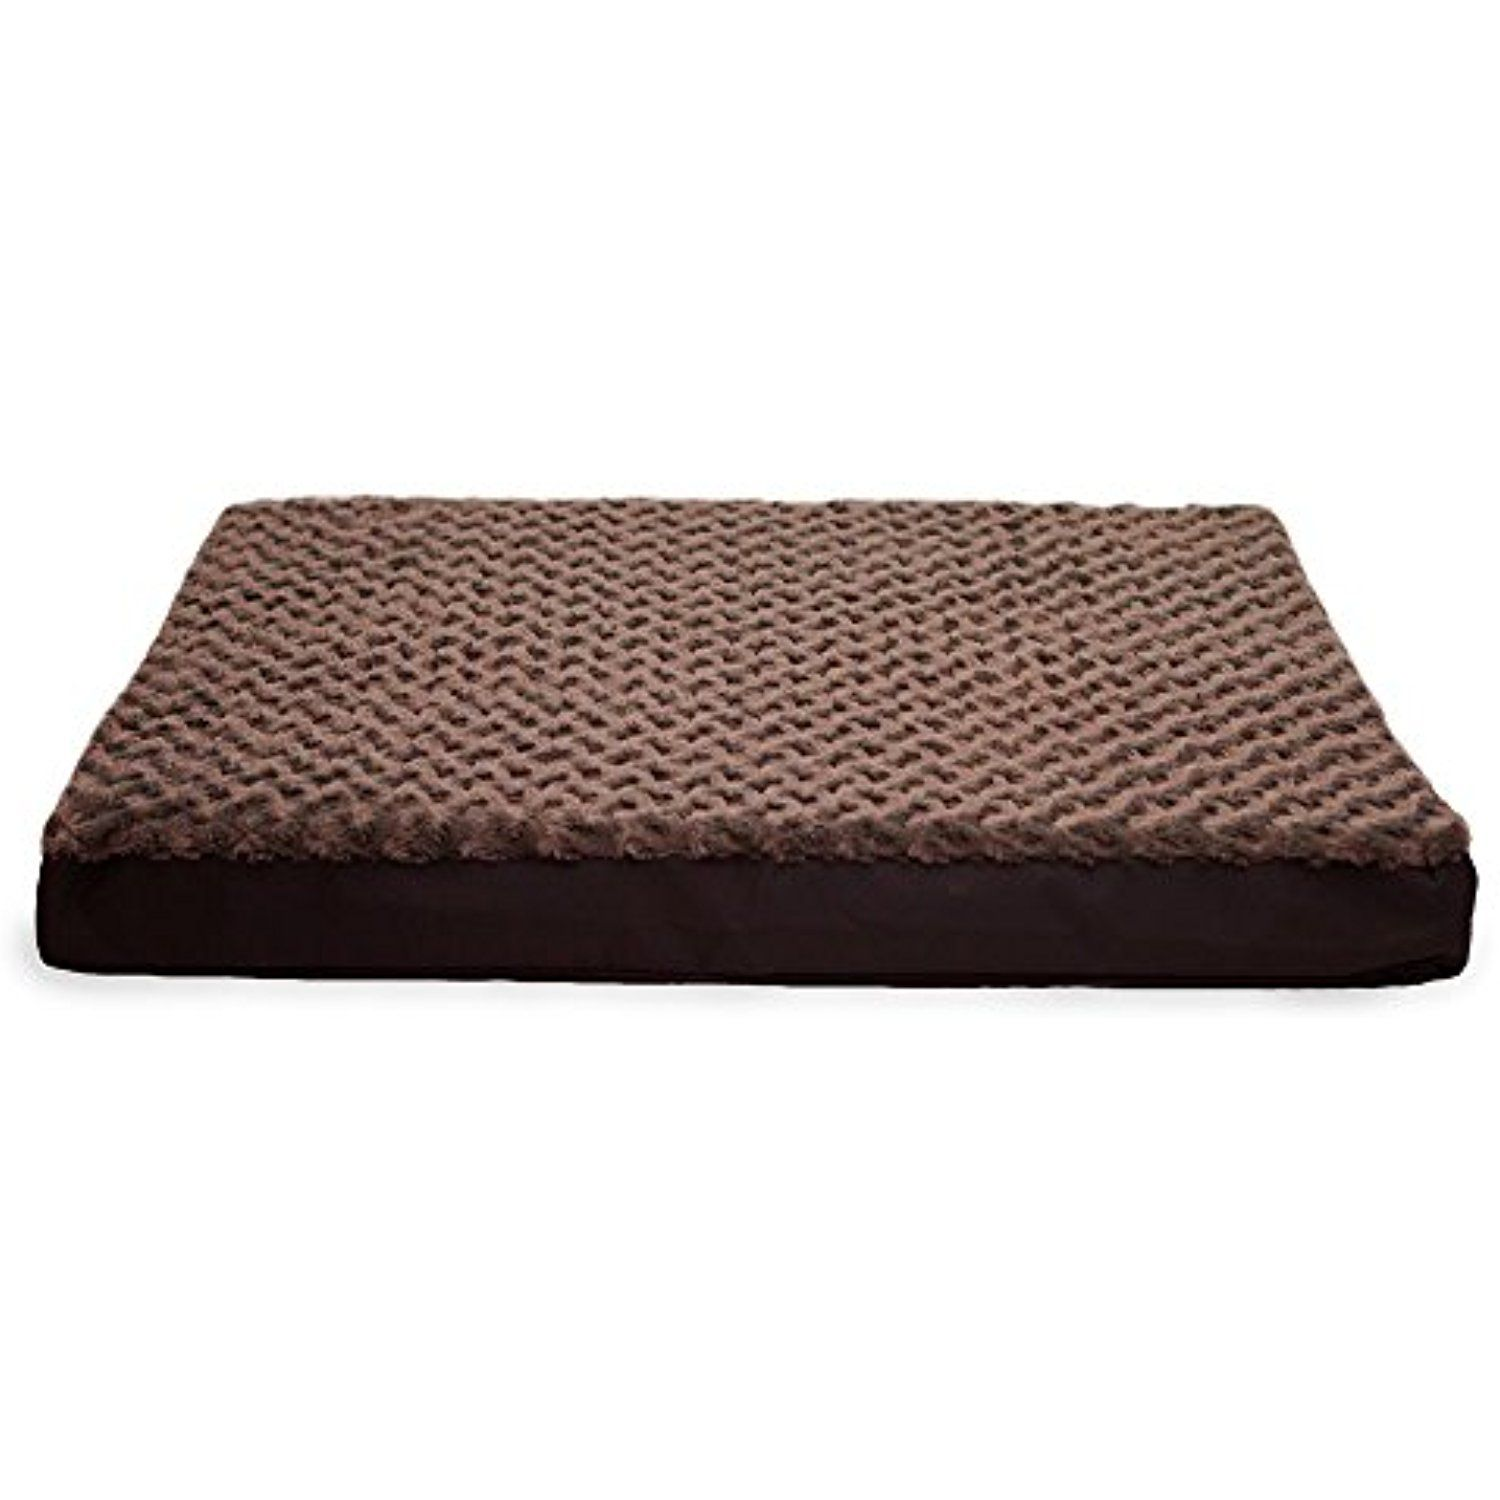 large 1 piece chocolate brown color deluxe ultra plush memory foam